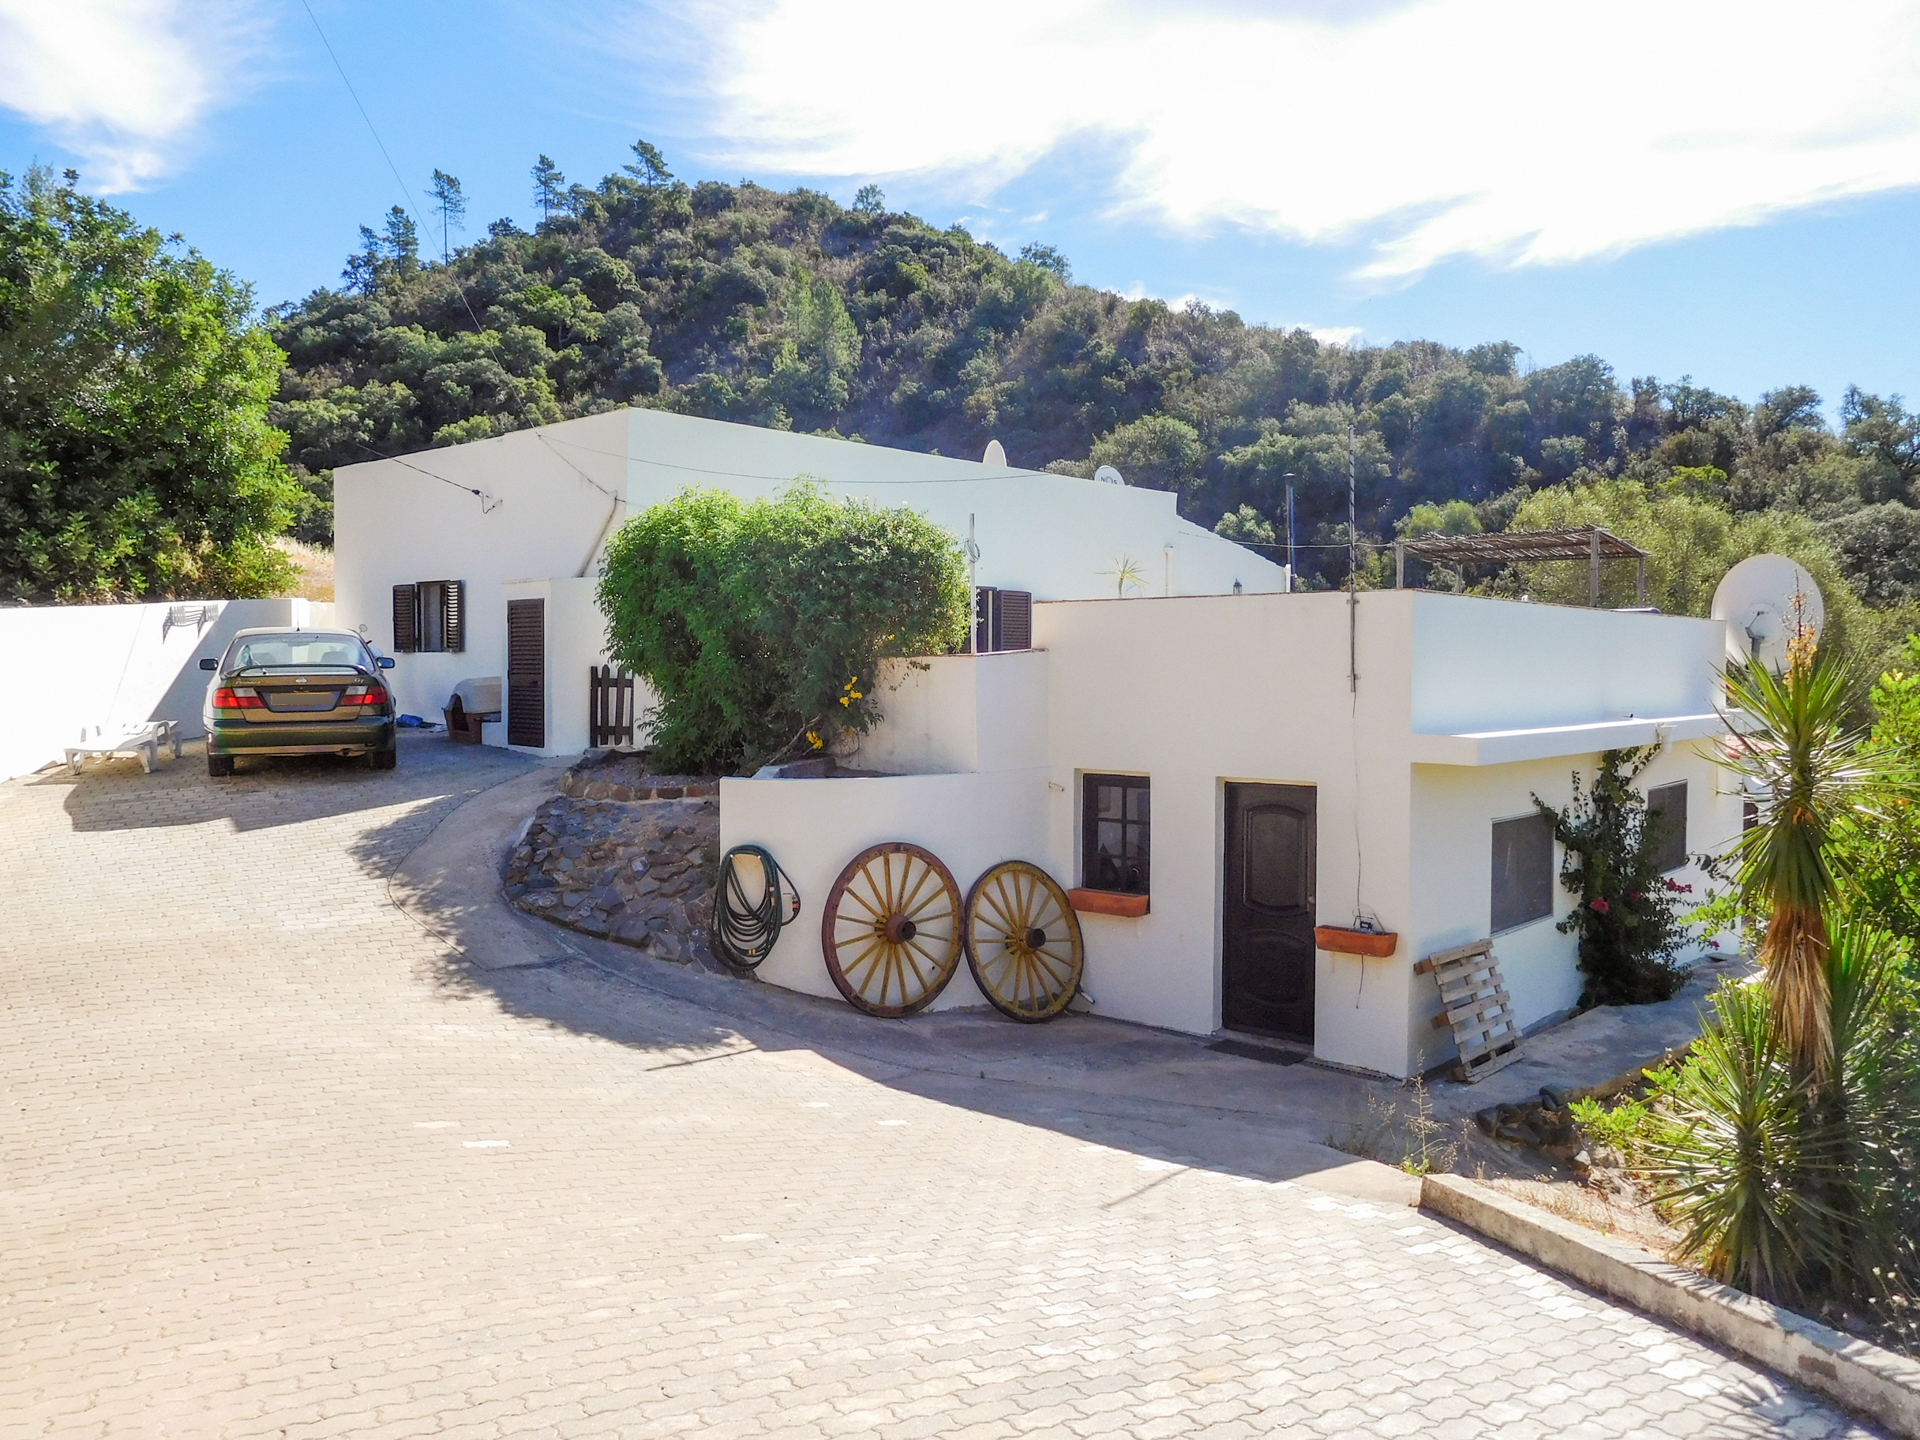 2-bedroom Country House with Pool, Annex in unspoiled rural location, Salir | VM912